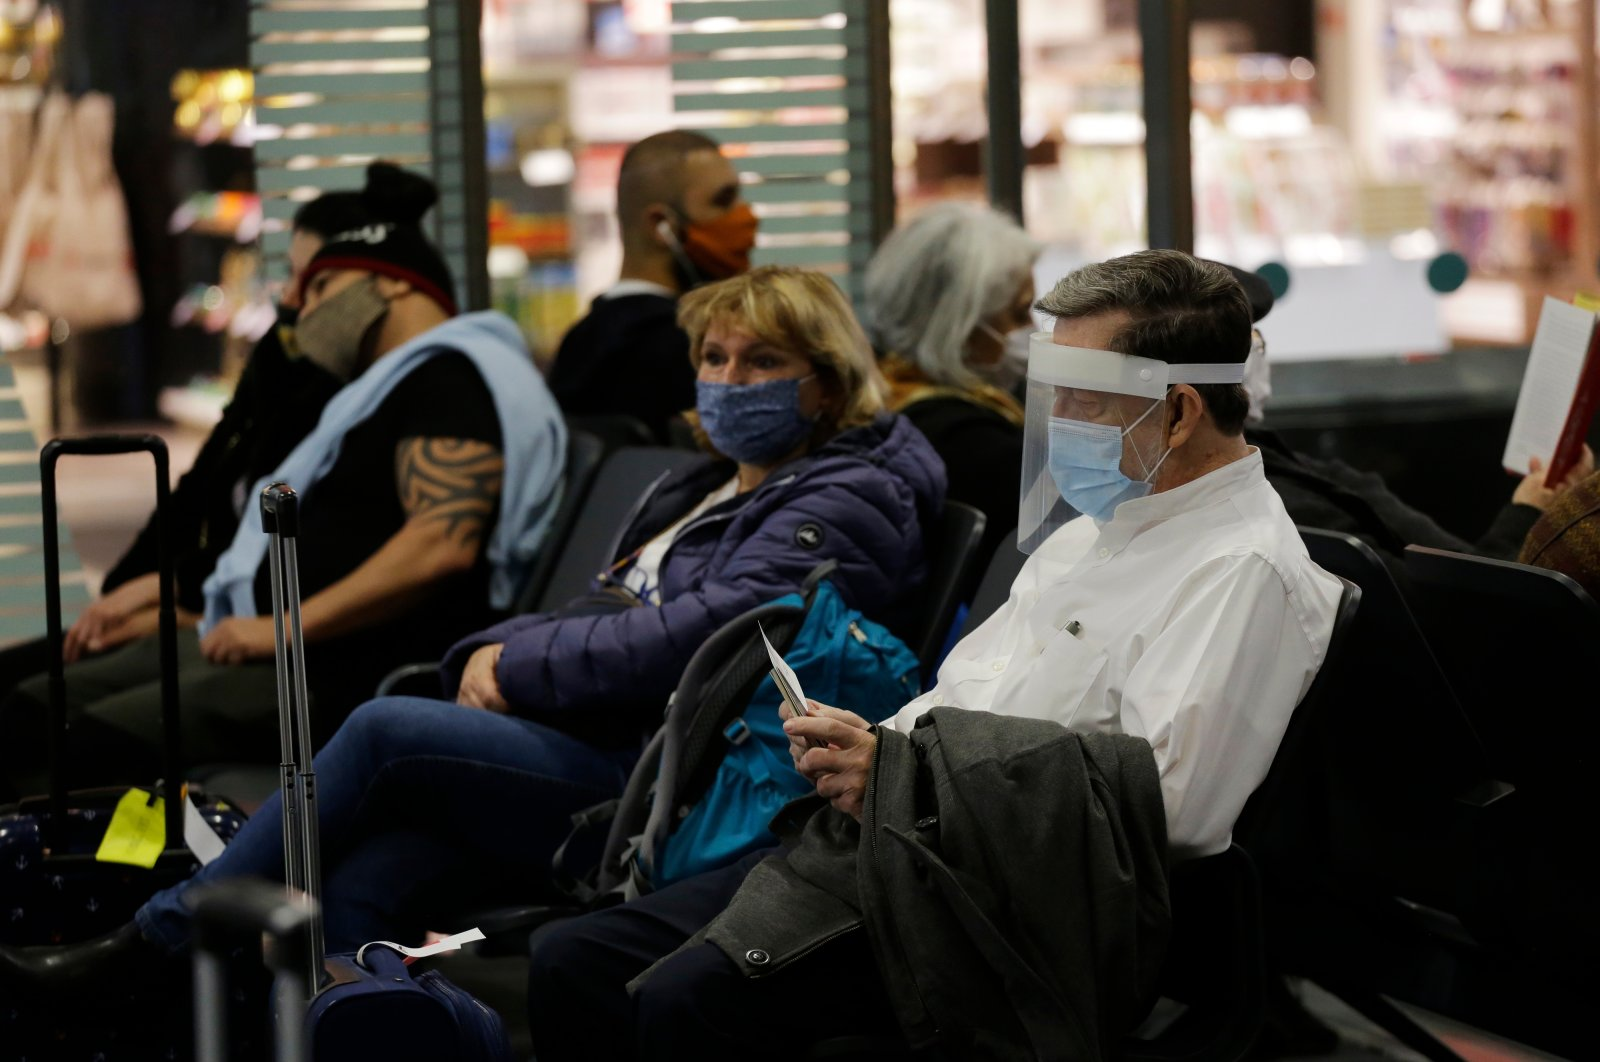 Passengers wearing face shields or masks as protection against the COVID-19 pandemic in the departure seating area of Istanbul Airport, Istanbul, Turkey, Dec. 1, 2020. (Shutterstock Photo)